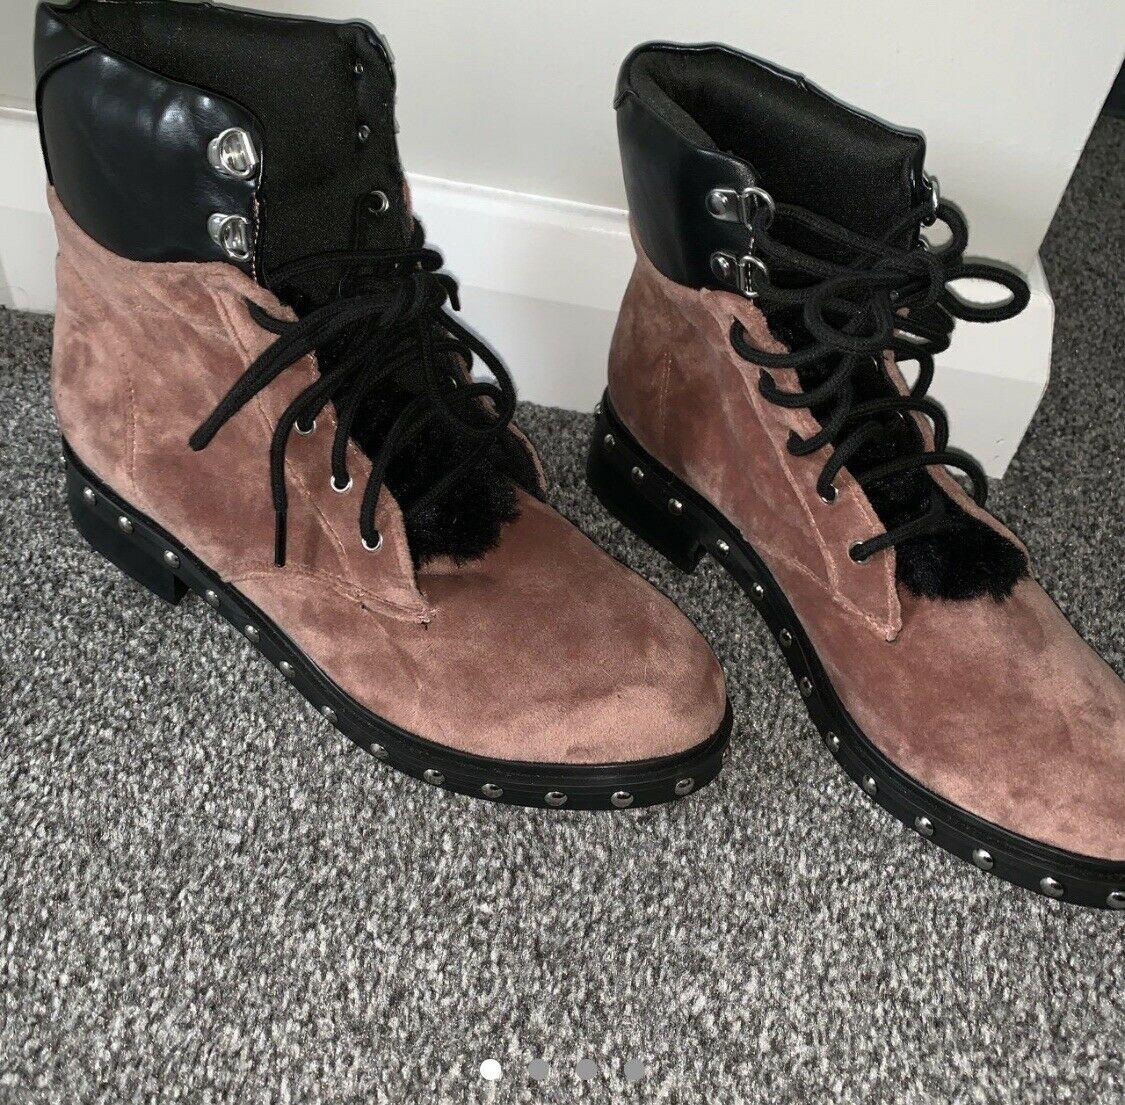 River Island Hiker Boots Size 4